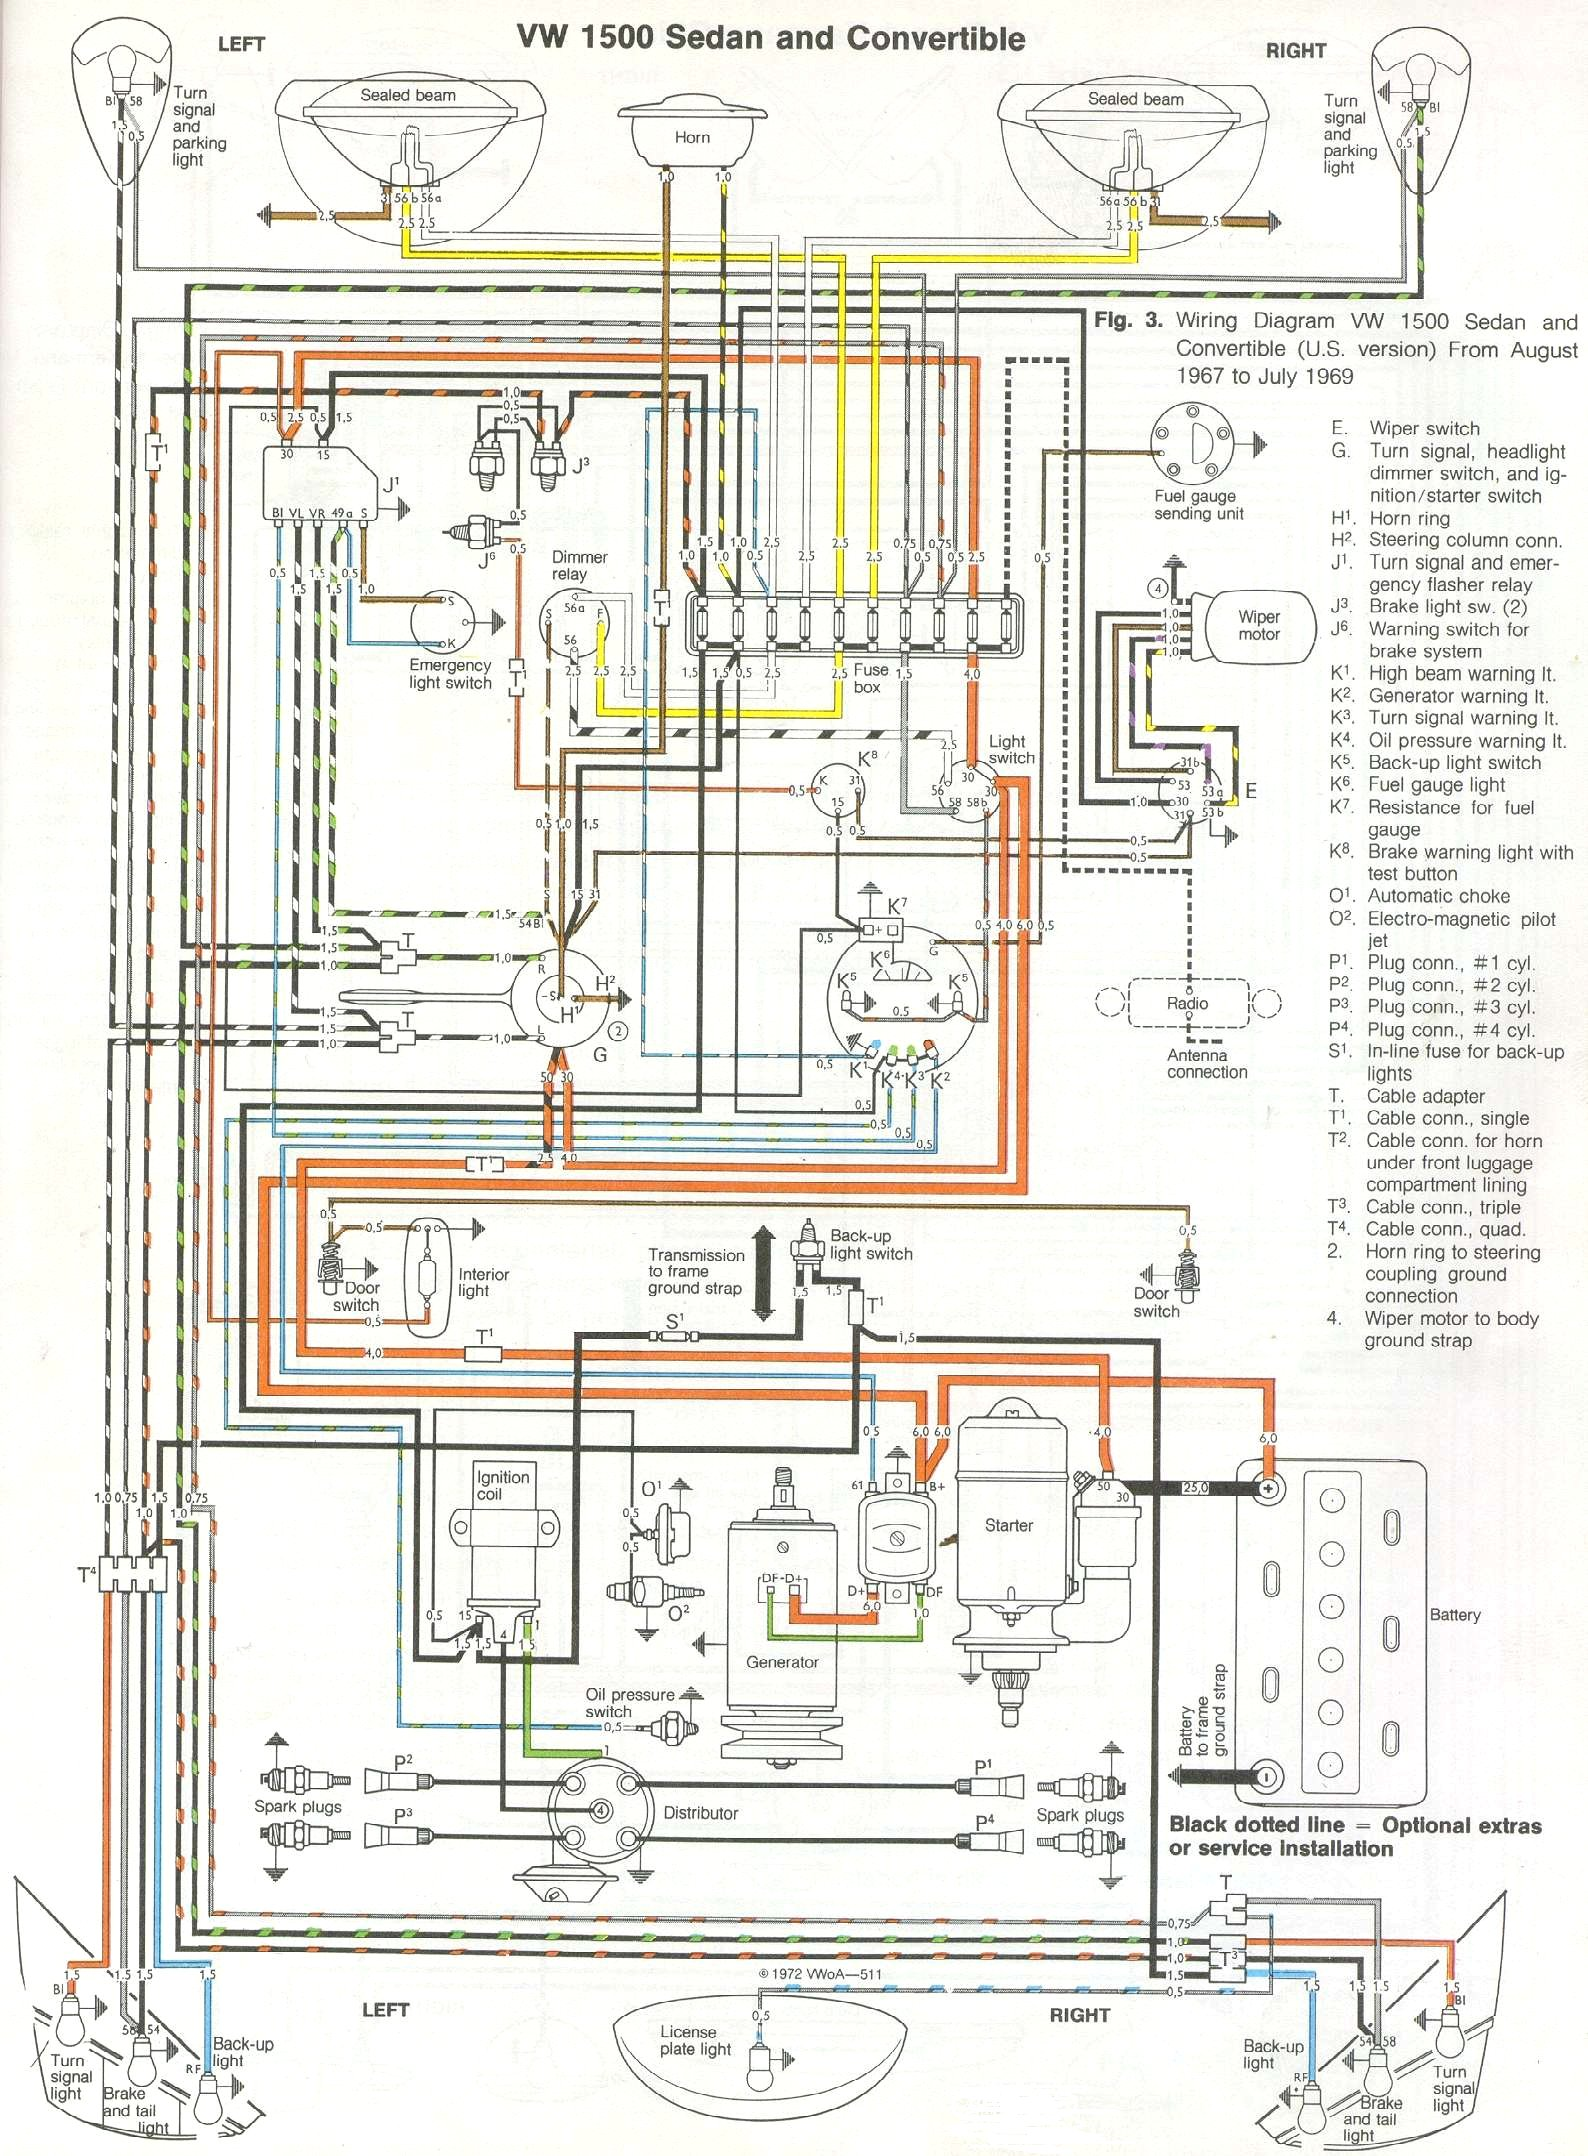 1969 71 beetle wiring diagram thegoldenbug com 69 VW Bug Parts 1969 71 beetle wiring diagram